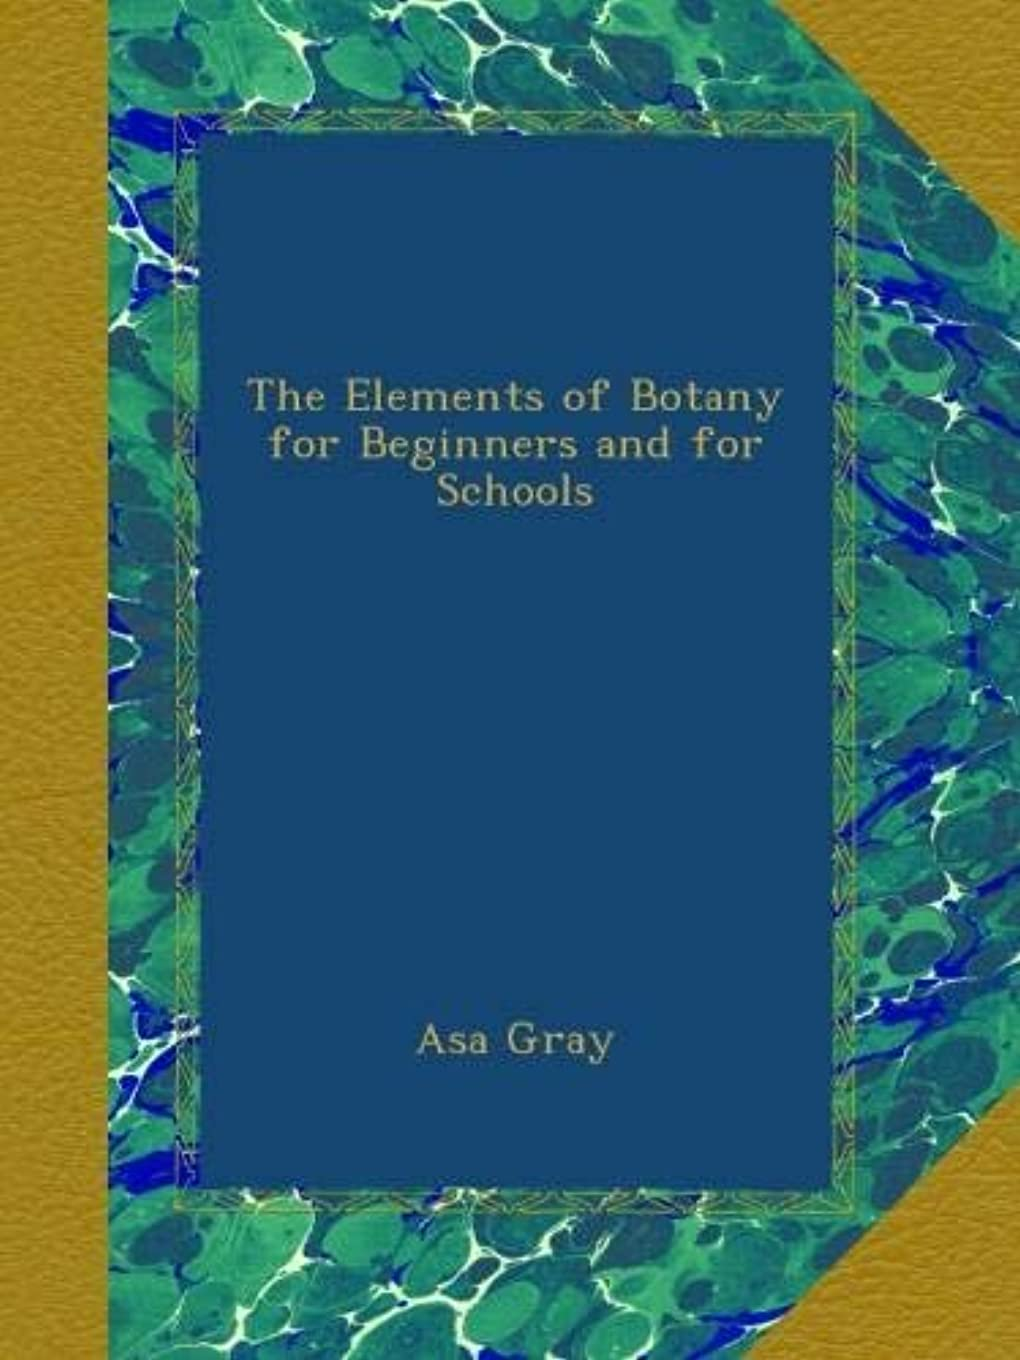 崇拝します竜巻シリアルThe Elements of Botany for Beginners and for Schools